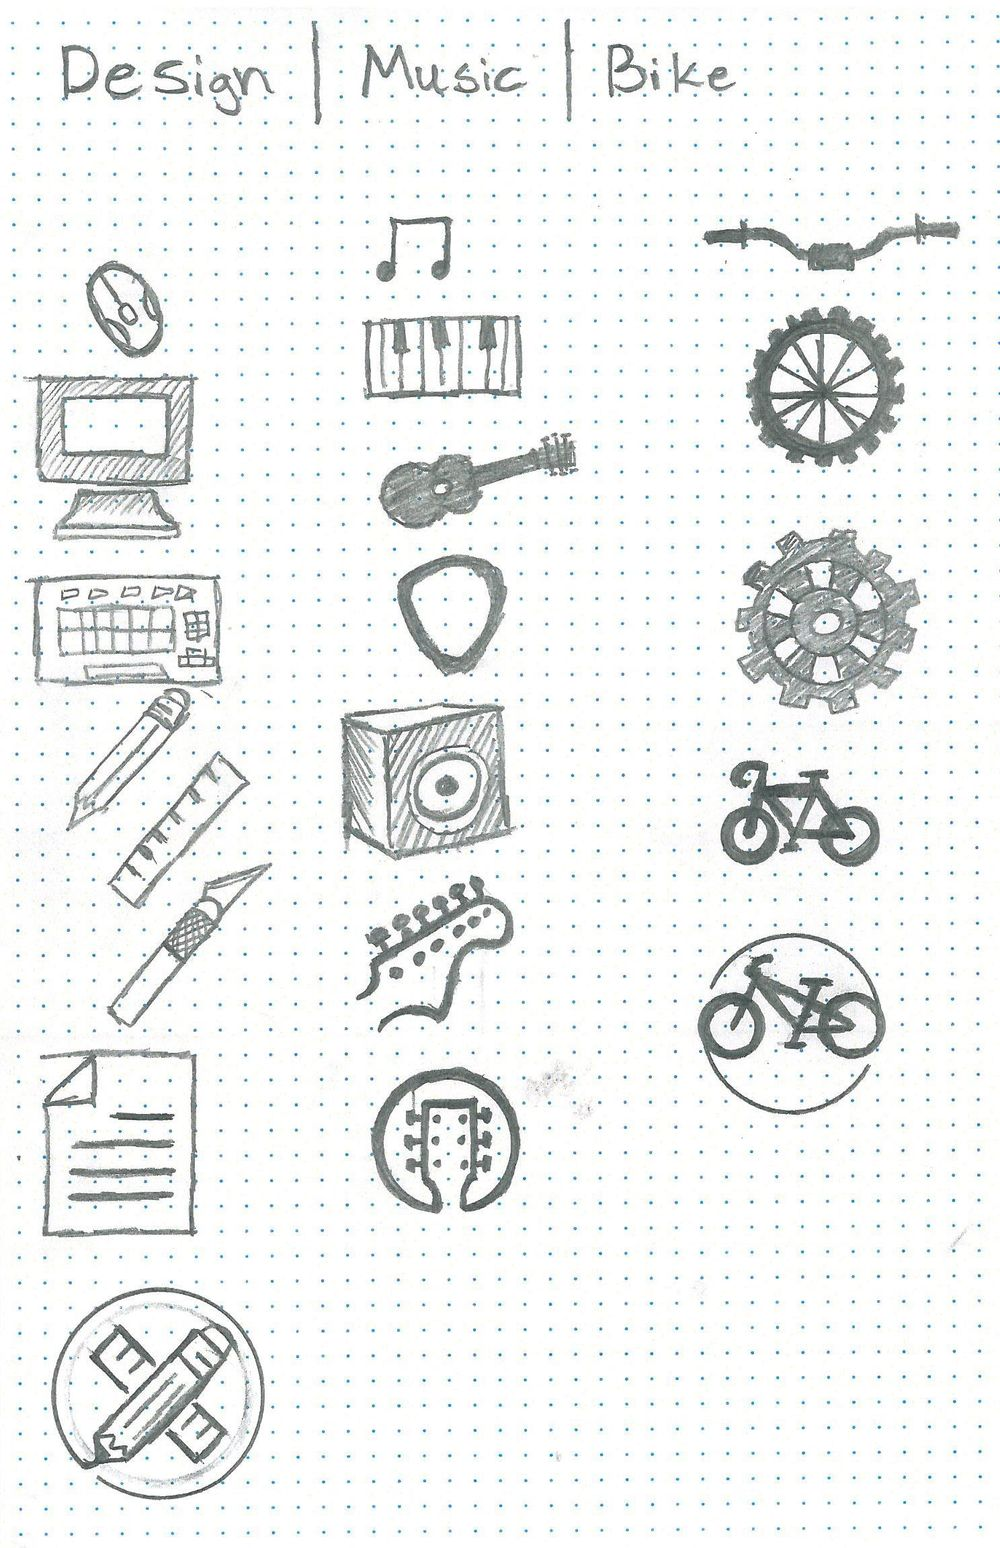 Icon Do This! - image 1 - student project